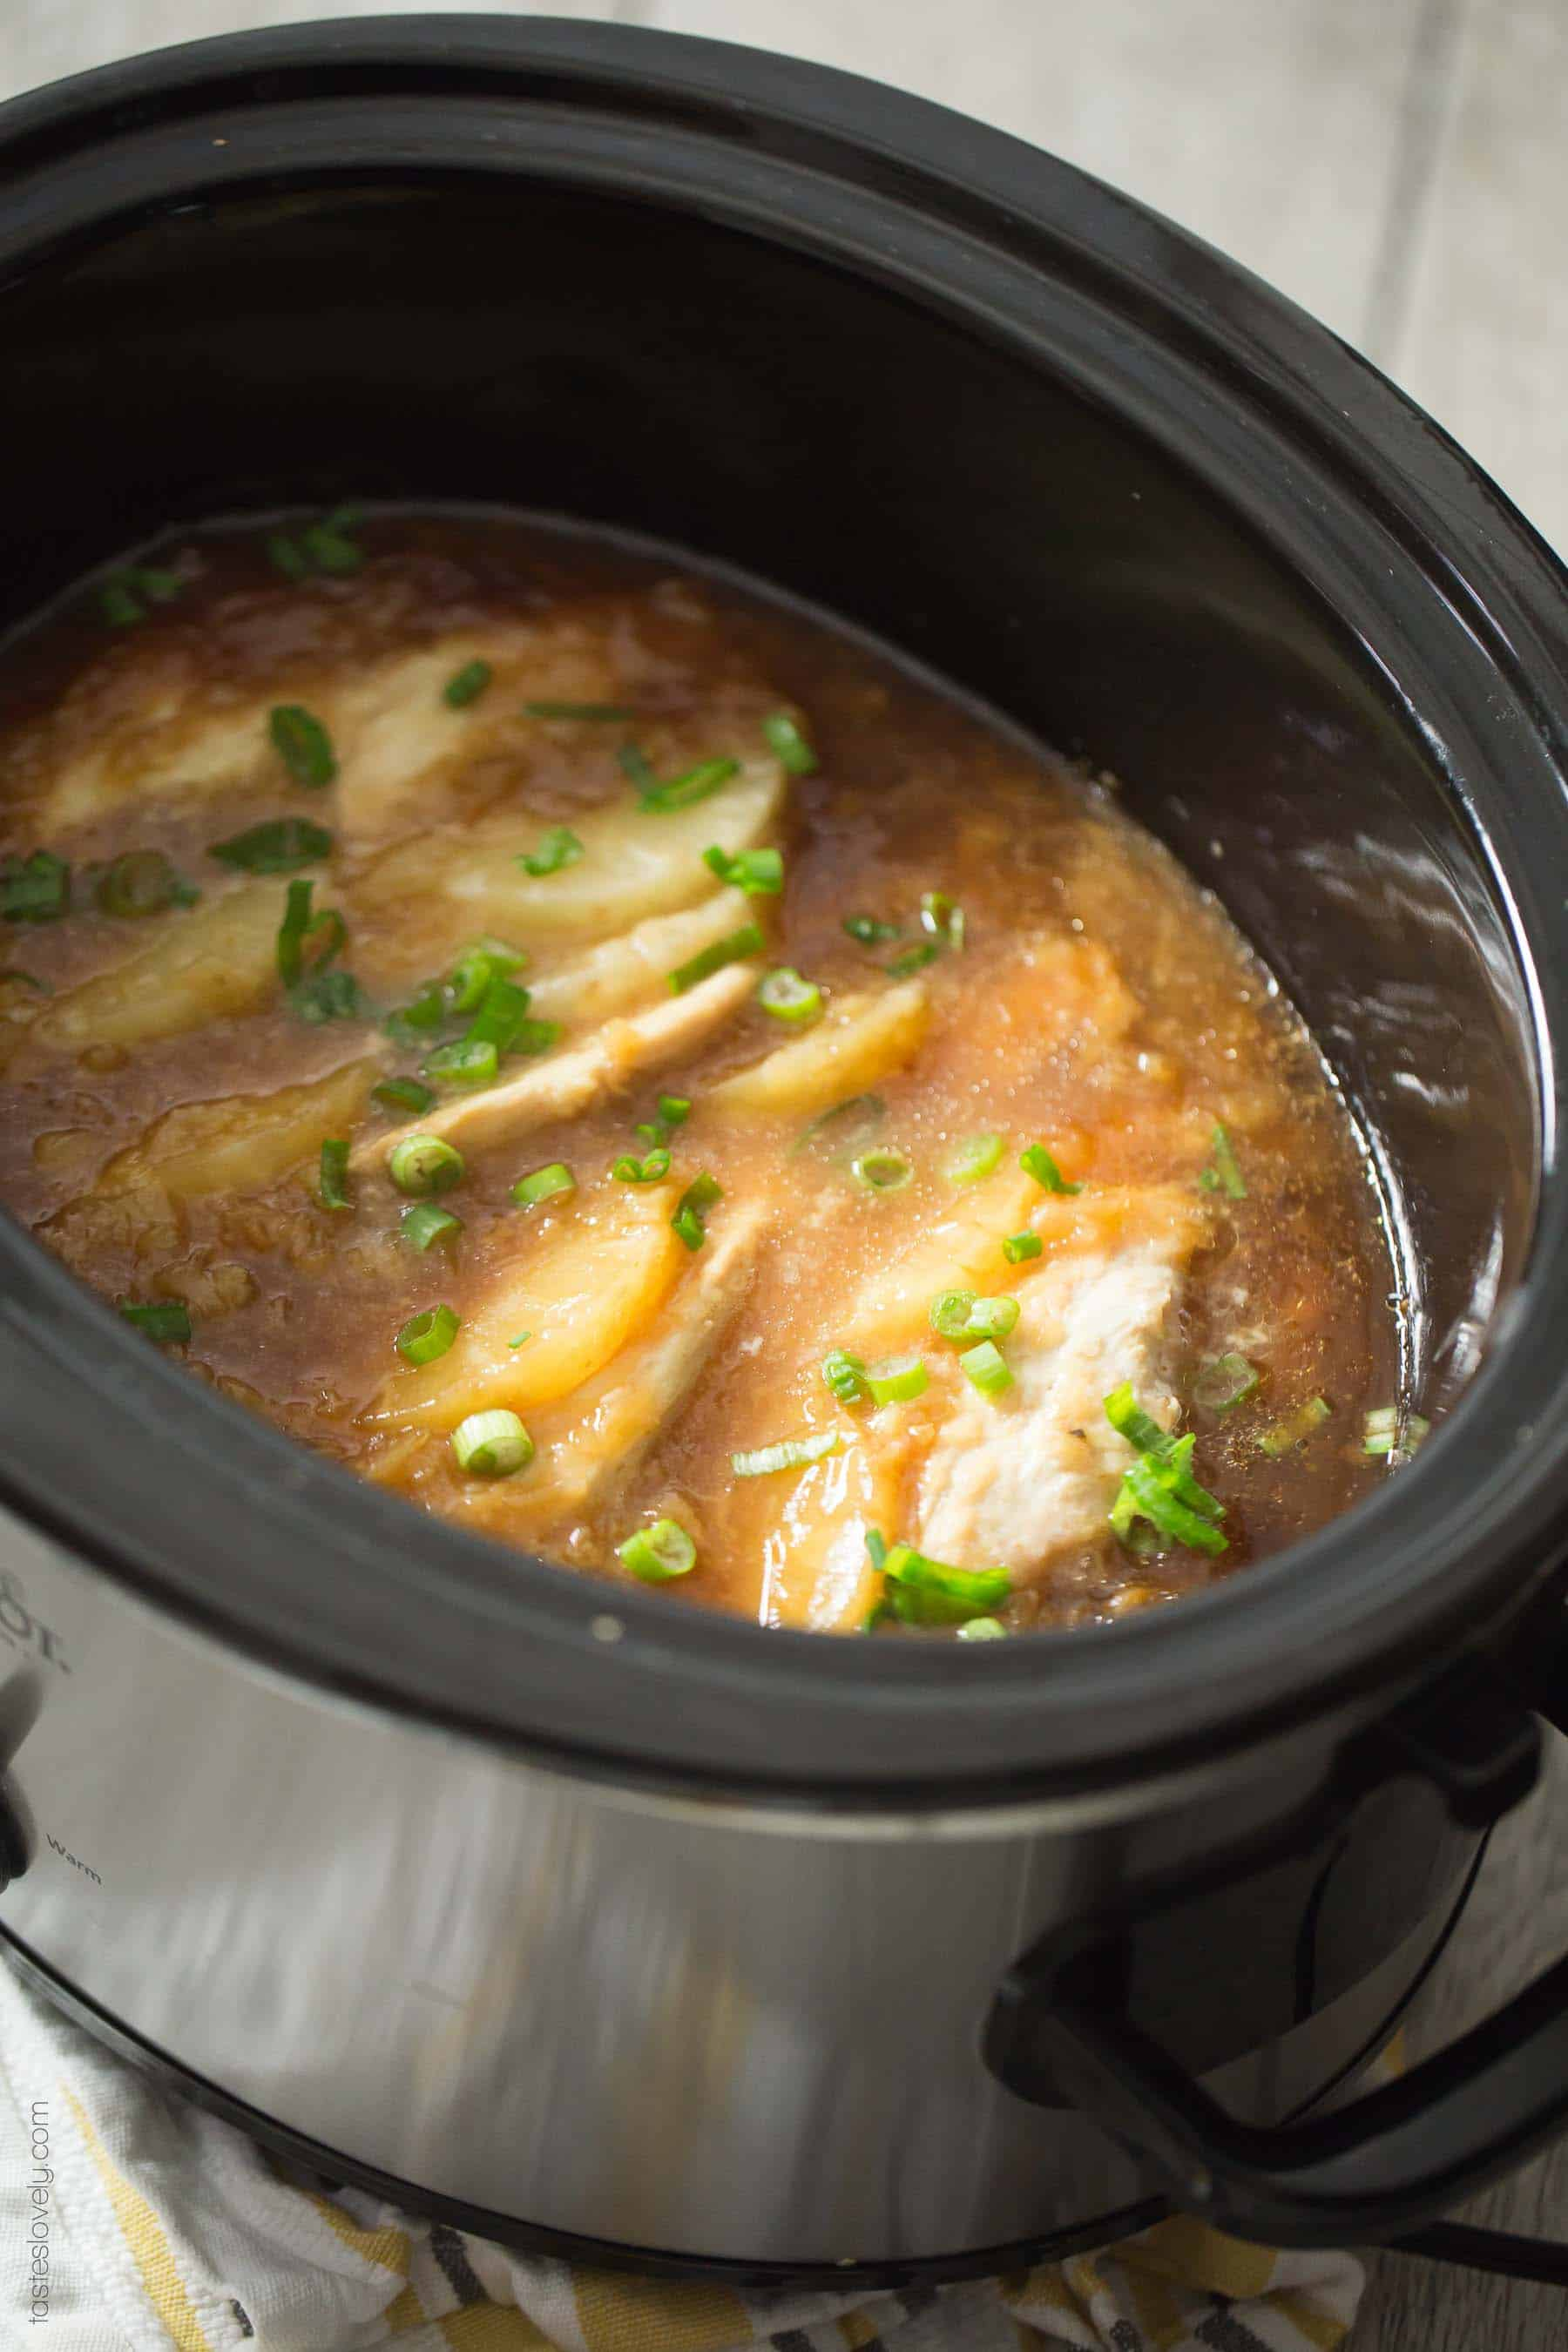 Slow Cooker Hawaiian Pineapple Chicken - a sweet and tangy crockpot dinner recipe the whole family will love! (gluten free, grain free, dairy free)